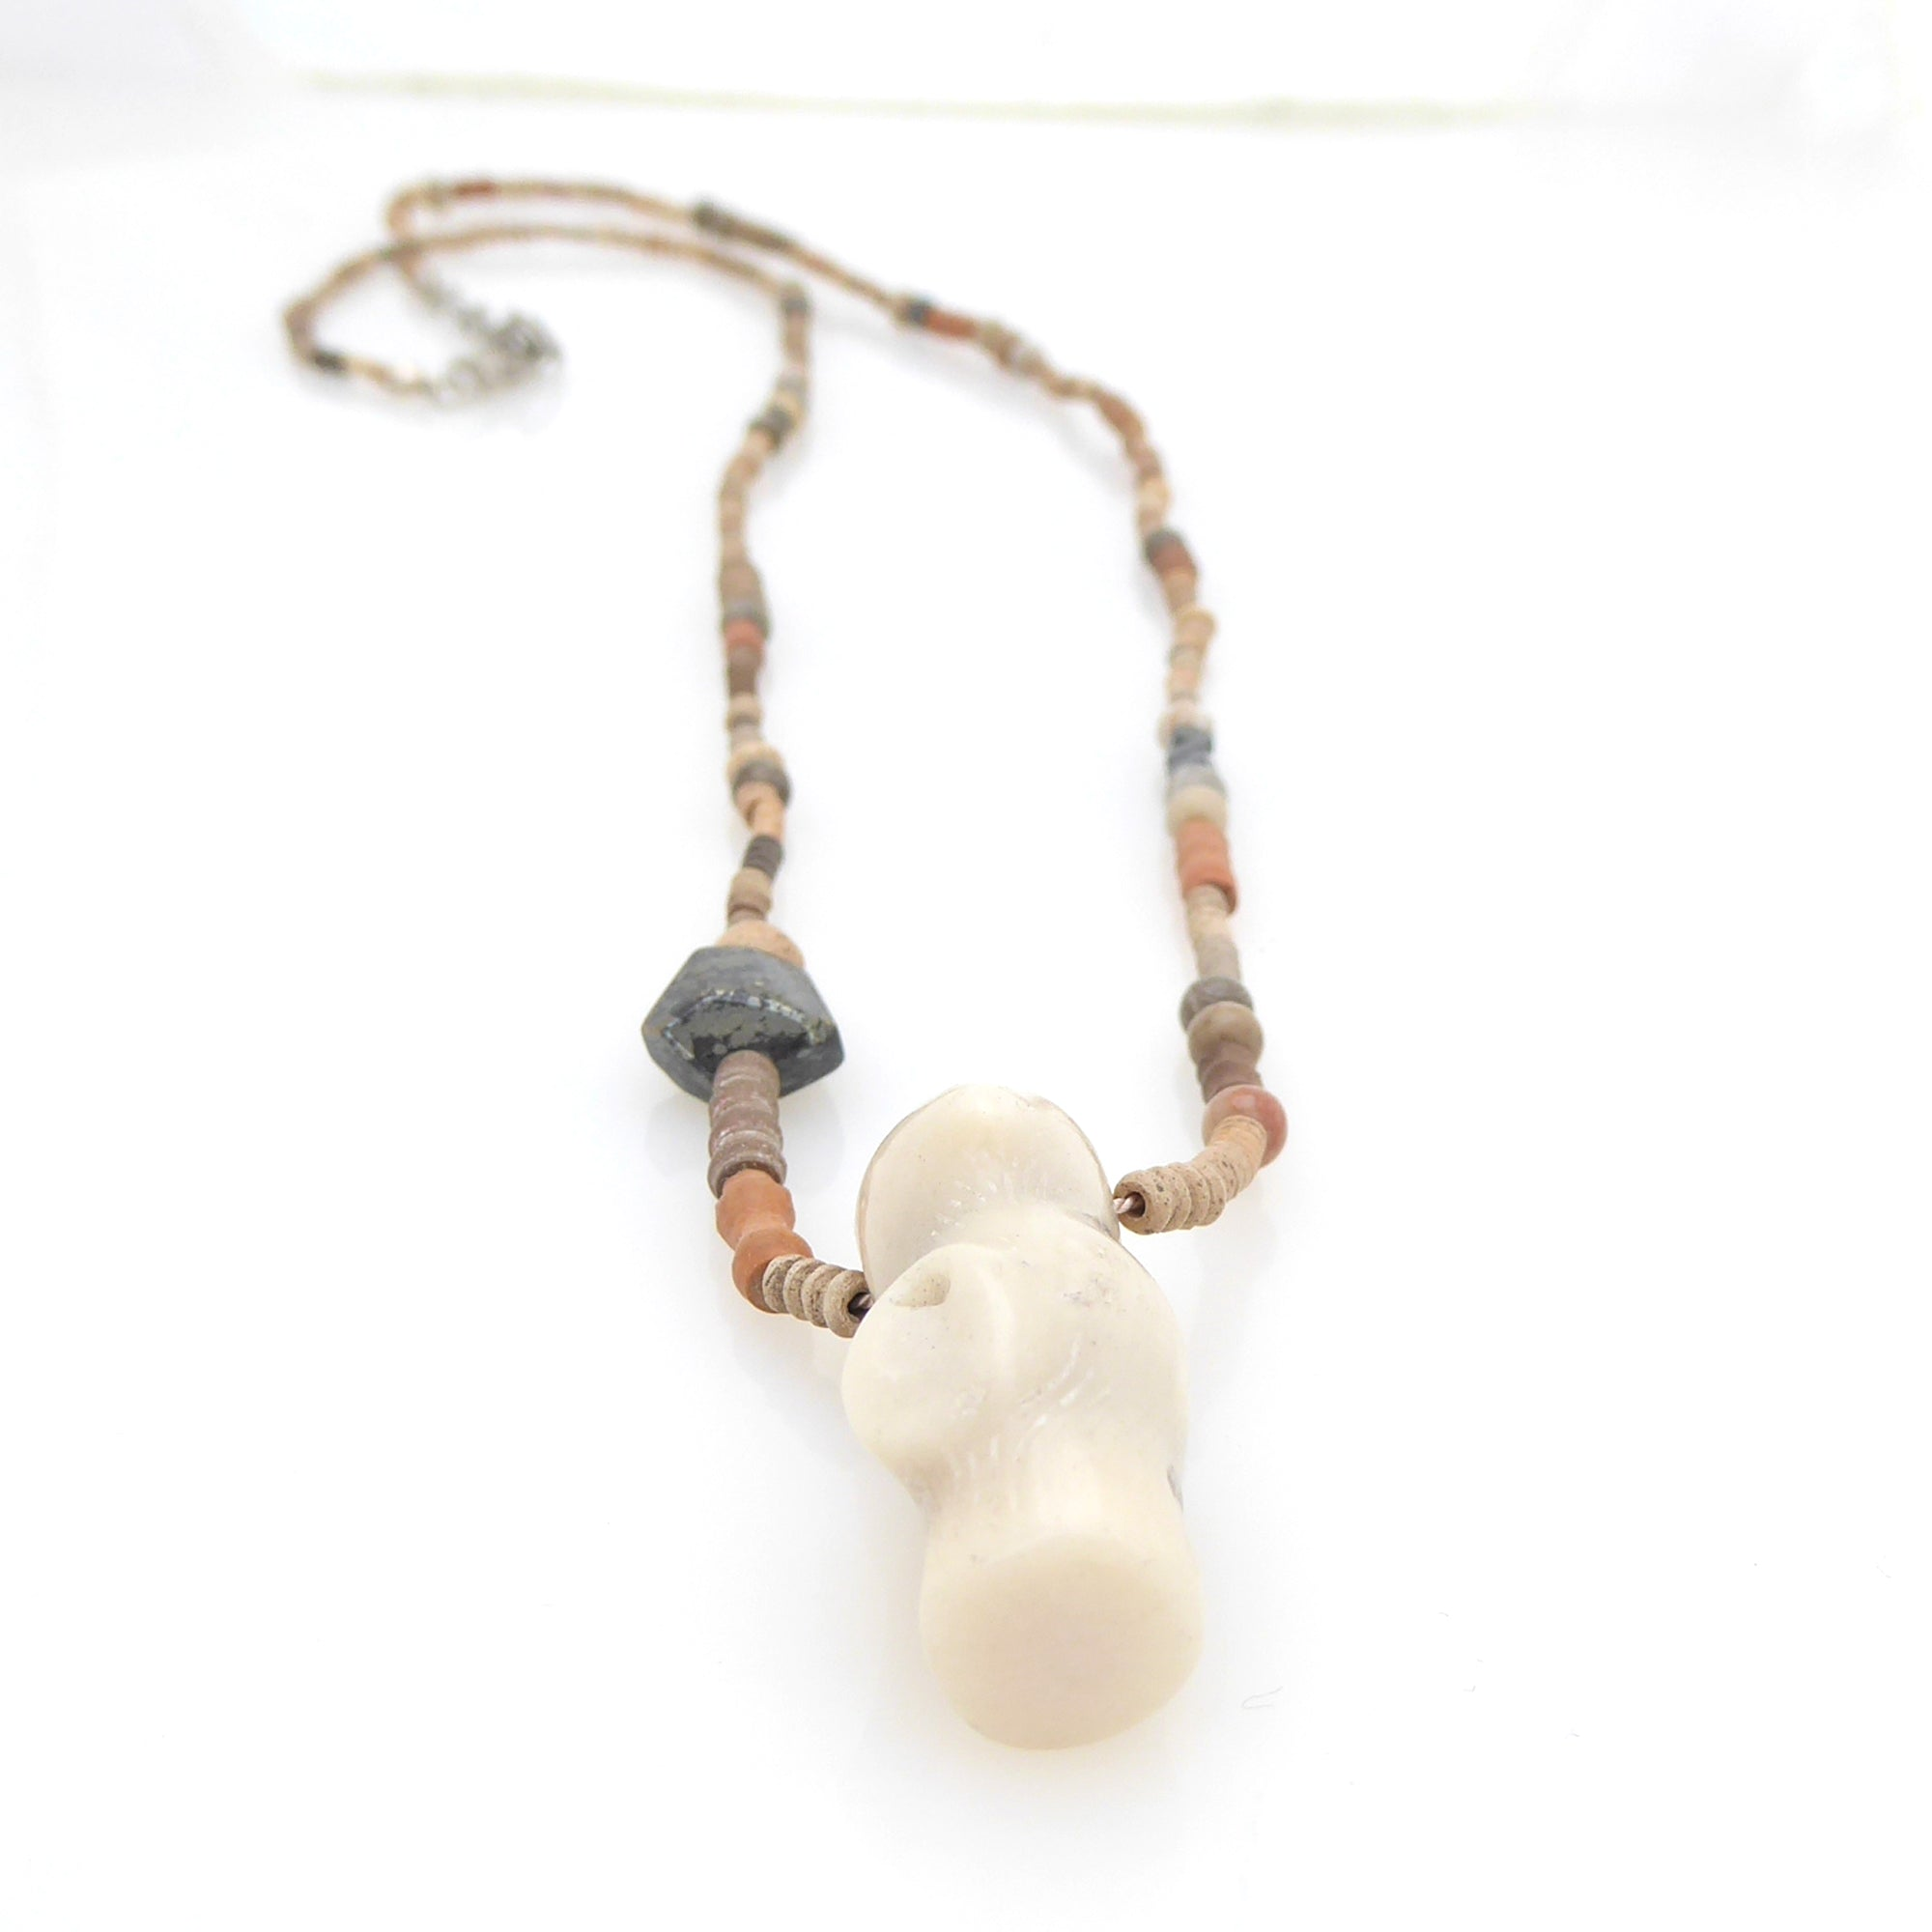 Clay and coral necklace